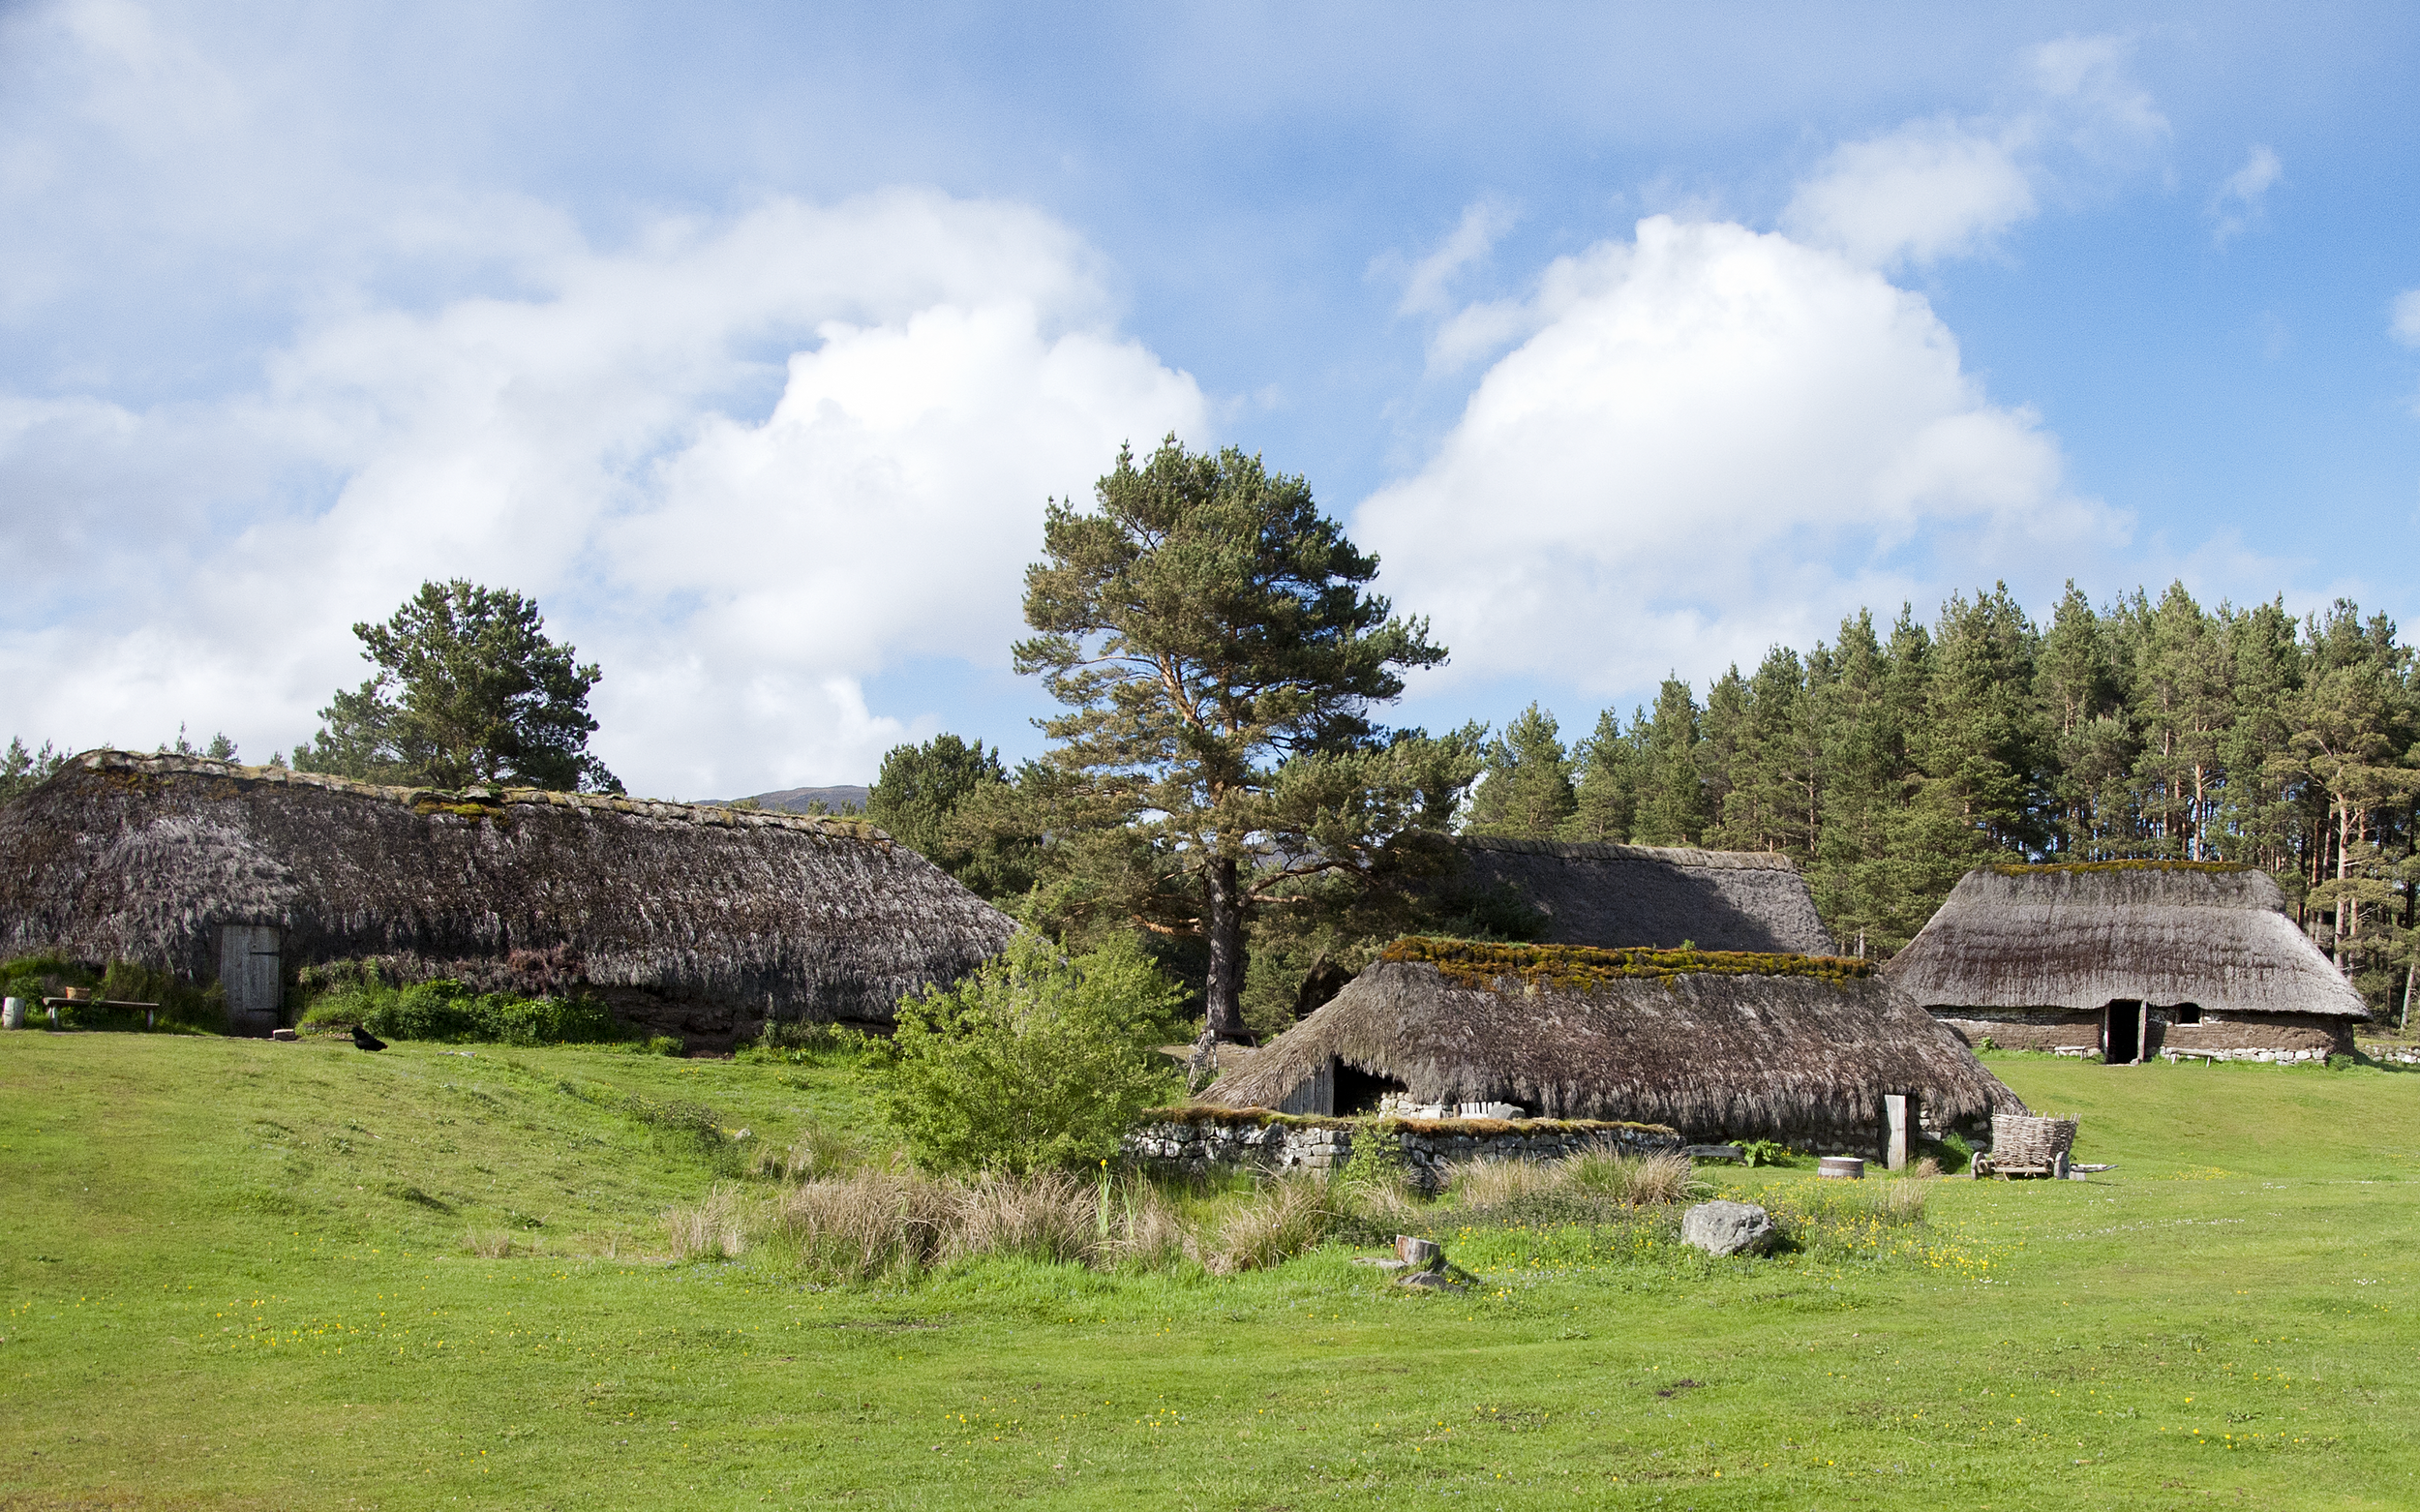 """A visit to the Highland Folklife Museum in Newtonmore gave MacKay her first real undeerstanding of life in a thatched roof Highland croft.                     0   false       18 pt   18 pt   0   0     false   false   false                                        /* Style Definitions */ table.MsoNormalTable {mso-style-name:""""Table Normal""""; mso-tstyle-rowband-size:0; mso-tstyle-colband-size:0; mso-style-noshow:yes; mso-style-parent:""""""""; mso-padding-alt:0in 5.4pt 0in 5.4pt; mso-para-margin:0in; mso-para-margin-bottom:.0001pt; mso-pagination:widow-orphan; font-size:12.0pt; font-family:""""Times New Roman""""; mso-ascii-font-family:Cambria; mso-ascii-theme-font:minor-latin; mso-fareast-font-family:""""MS 明朝""""; mso-fareast-theme-font:minor-fareast; mso-hansi-font-family:Cambria; mso-hansi-theme-font:minor-latin;}      By Paul Hermans (Own work) [GFDL (http://www.gnu.org/copyleft/fdl.html) or CC BY-SA 3.0 (http://creativecommons.org/licenses/by-sa/3.0)], via Wikimedia Commons"""